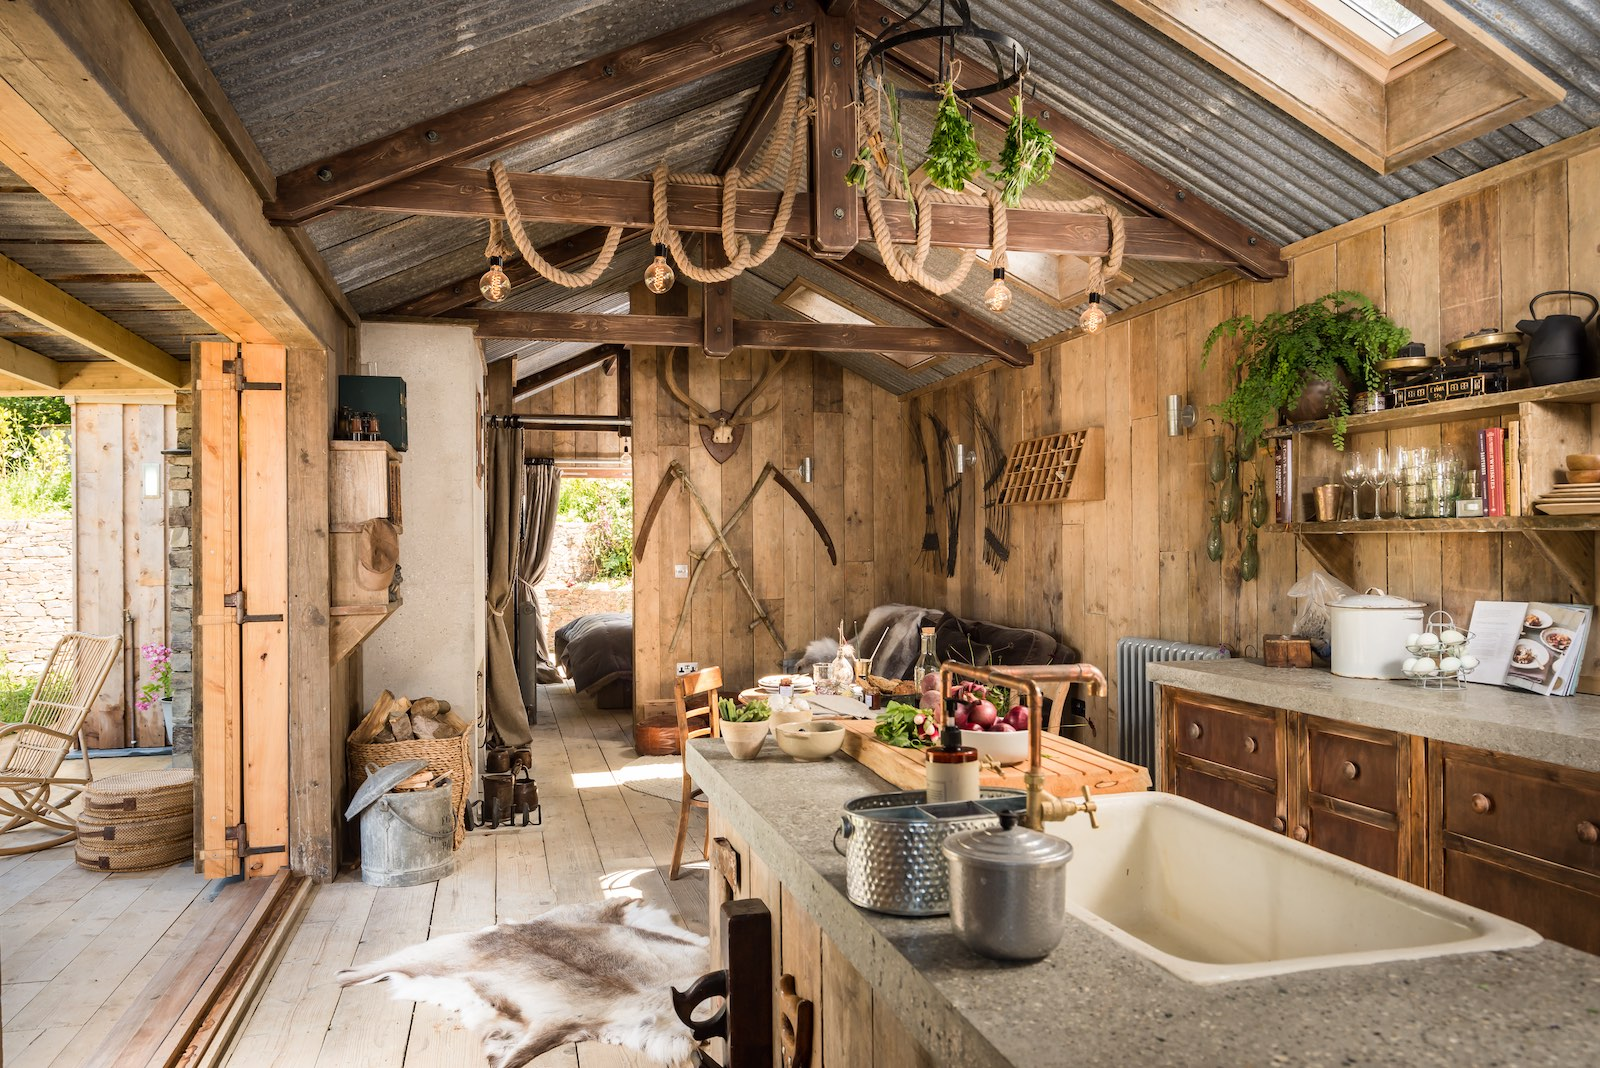 Gallery The Rustic And Romantic Firefly Cabin Small